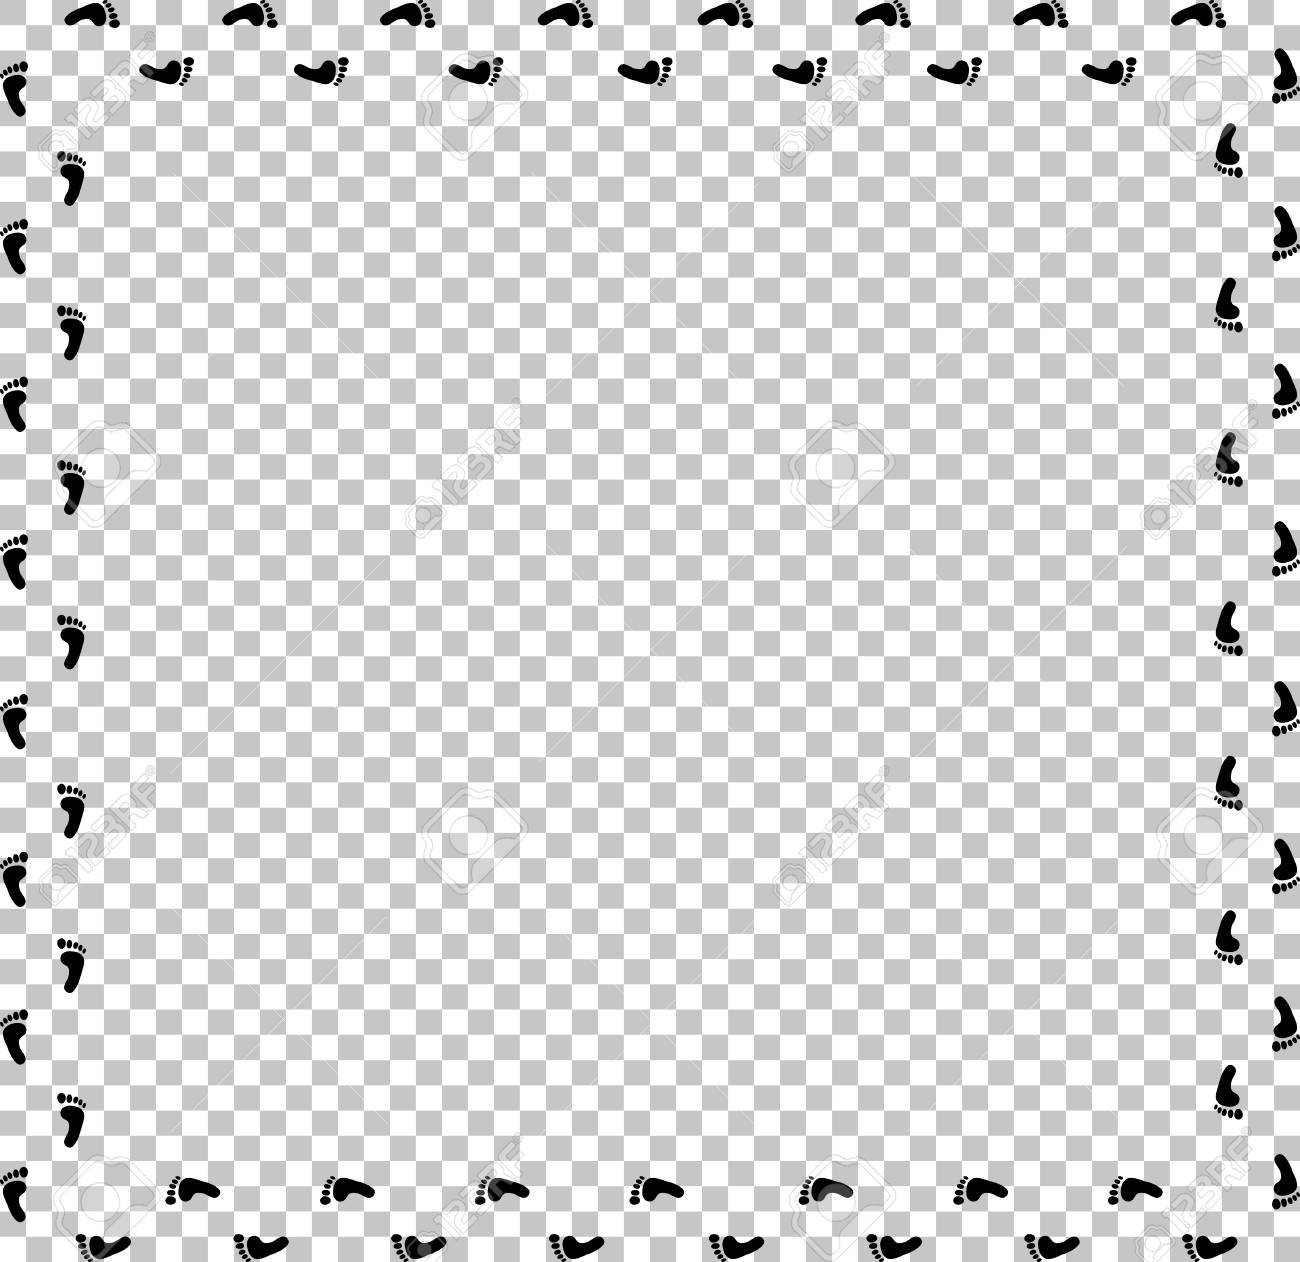 Square Border Or P O Frame With Prints Barefooted Human Foot Ande For Text Or Image